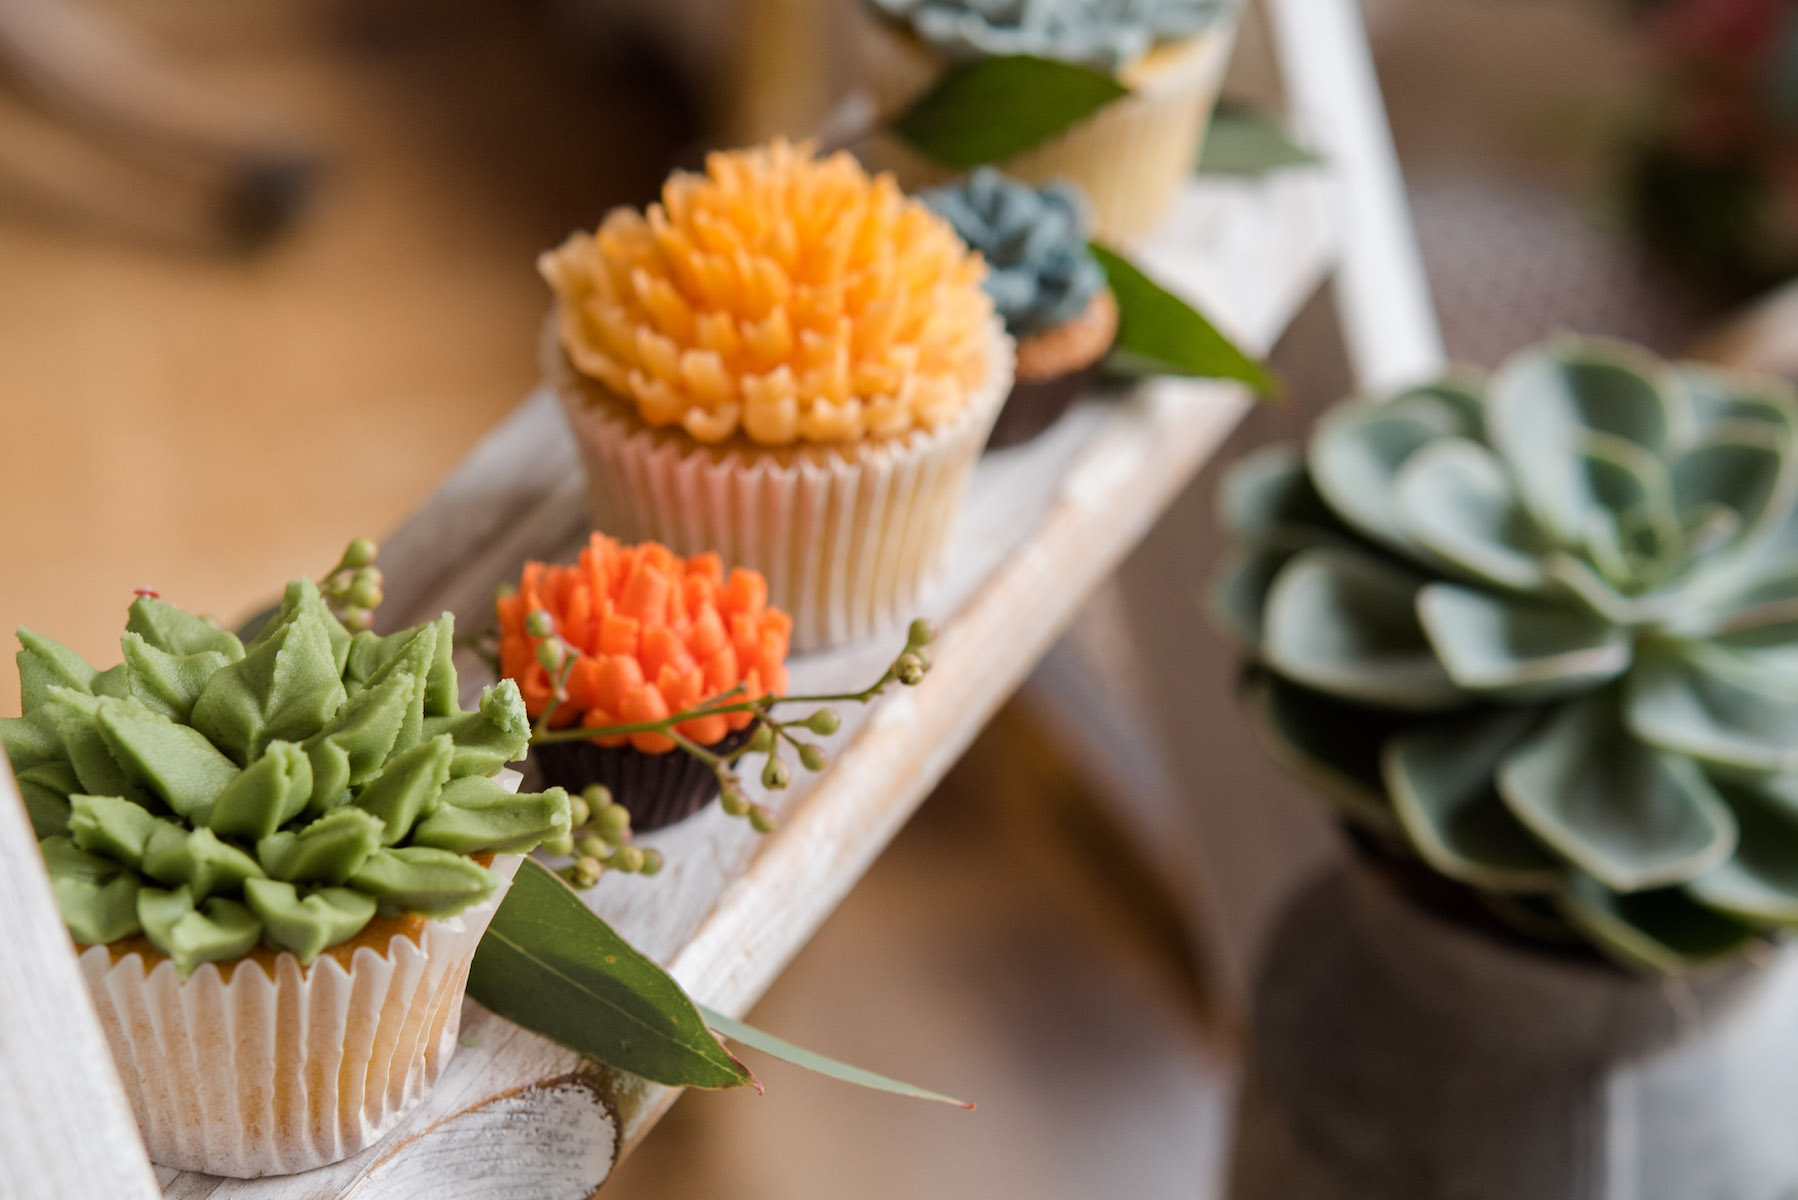 Handmade floral and succulent cupcakes